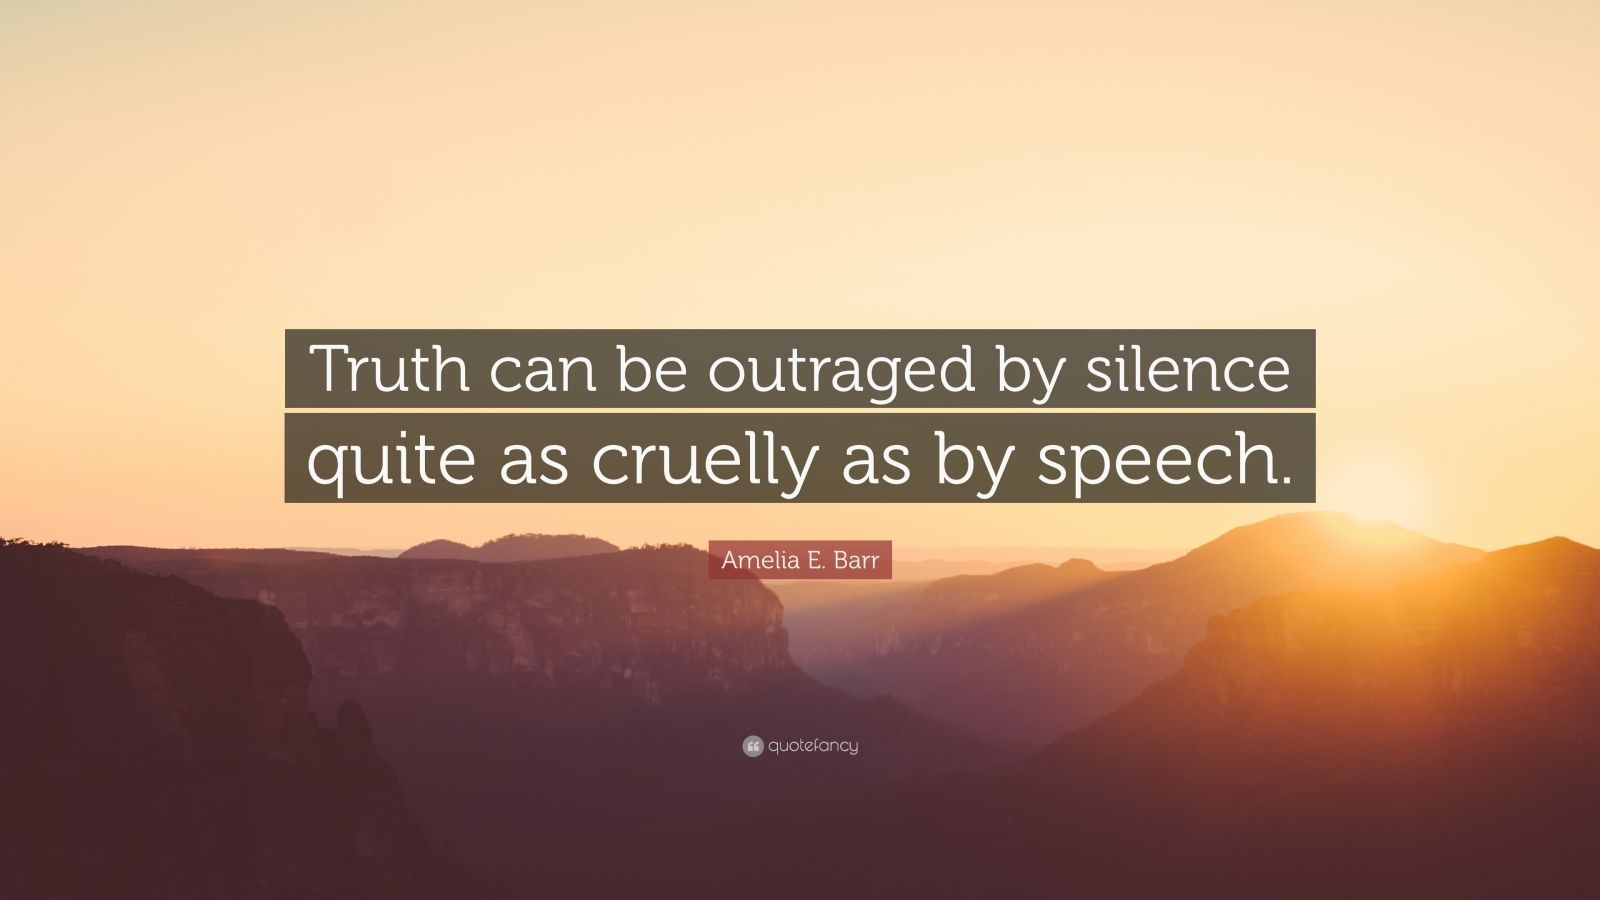 """Amelia E. Barr Quote: """"Truth can be outraged by silence quite as cruelly as by speech."""""""